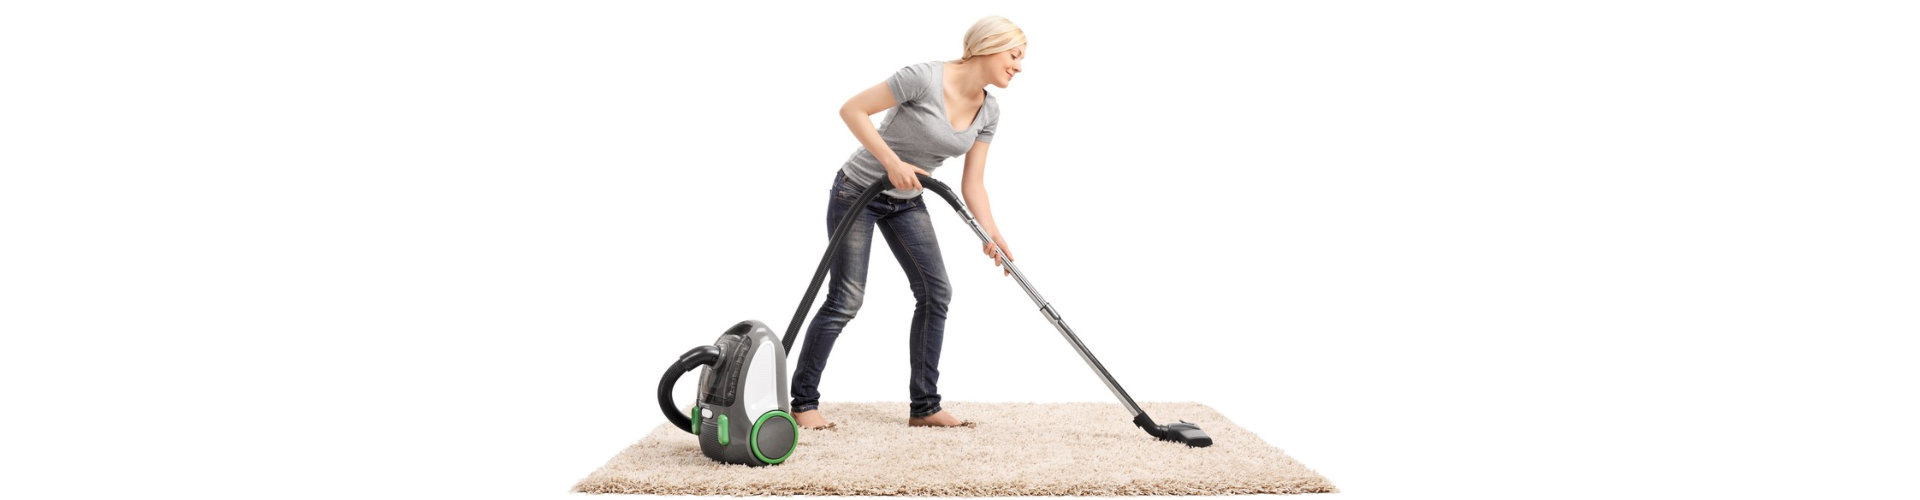 housekeeping cleaning the carpet using a vacuum cleaner